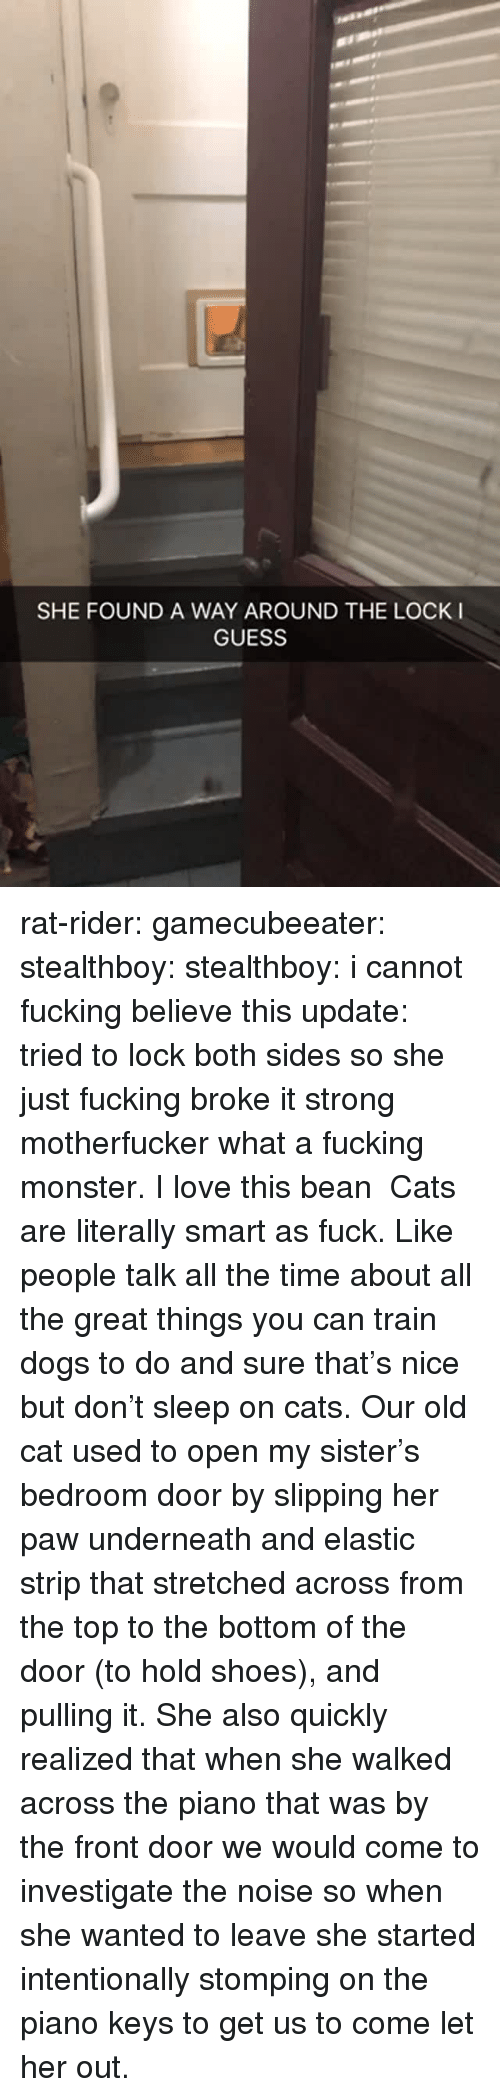 Cats, Dogs, and Fucking: SHE FOUND A WAY AROUND THE LOCK I  GUESS rat-rider: gamecubeeater:  stealthboy:  stealthboy: i cannot fucking believe this update: tried to lock both sides so she just fucking broke it   strong motherfucker  what a fucking monster. I love this bean   Cats are literally smart as fuck. Like people talk all the time about all the great things you can train dogs to do and sure that's nice but don't sleep on cats. Our old cat used to open my sister's bedroom door by slipping her paw underneath and elastic strip that stretched across from the top to the bottom of the door (to hold shoes), and pulling it. She also quickly realized that when she walked across the piano that was by the front door we would come to investigate the noise so when she wanted to leave she started intentionally stomping on the piano keys to get us to come let her out.